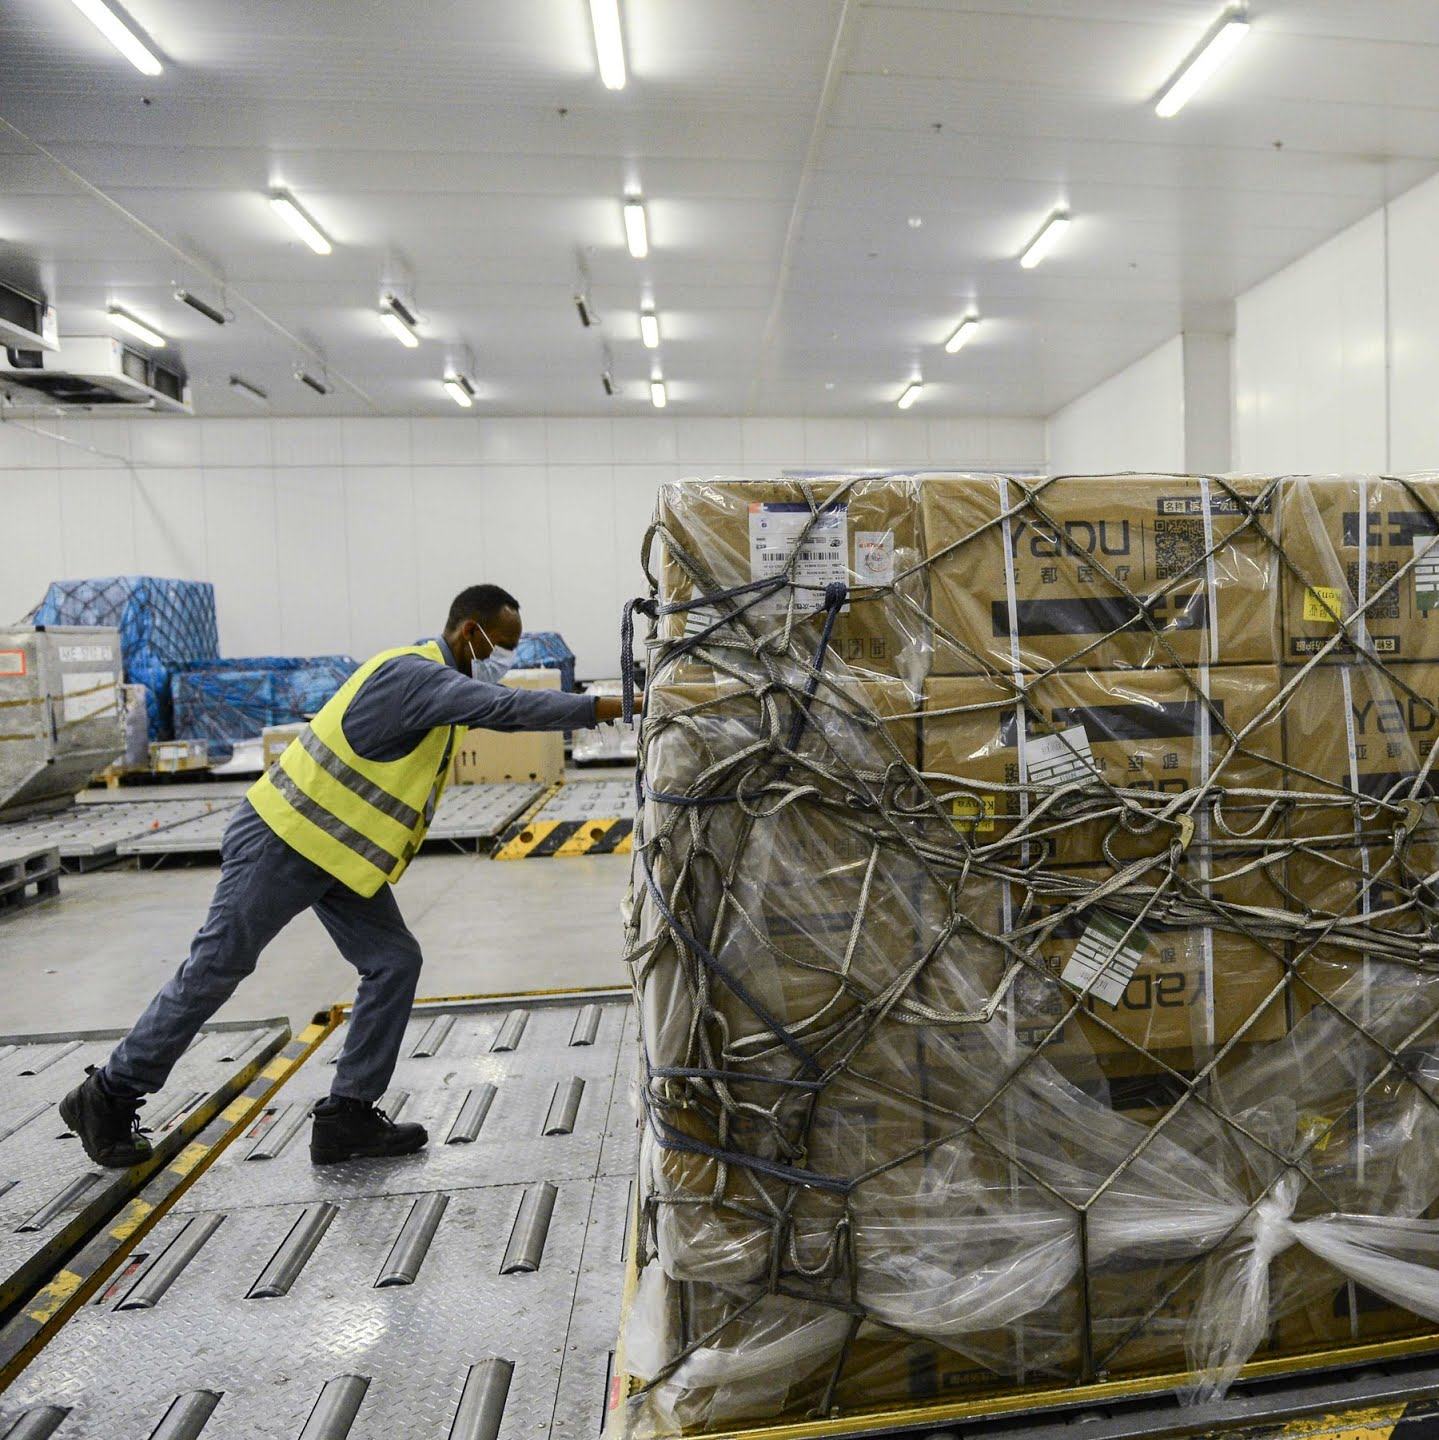 Moving boxes of protective equipment at Bole International Airport in Addis Ababa.